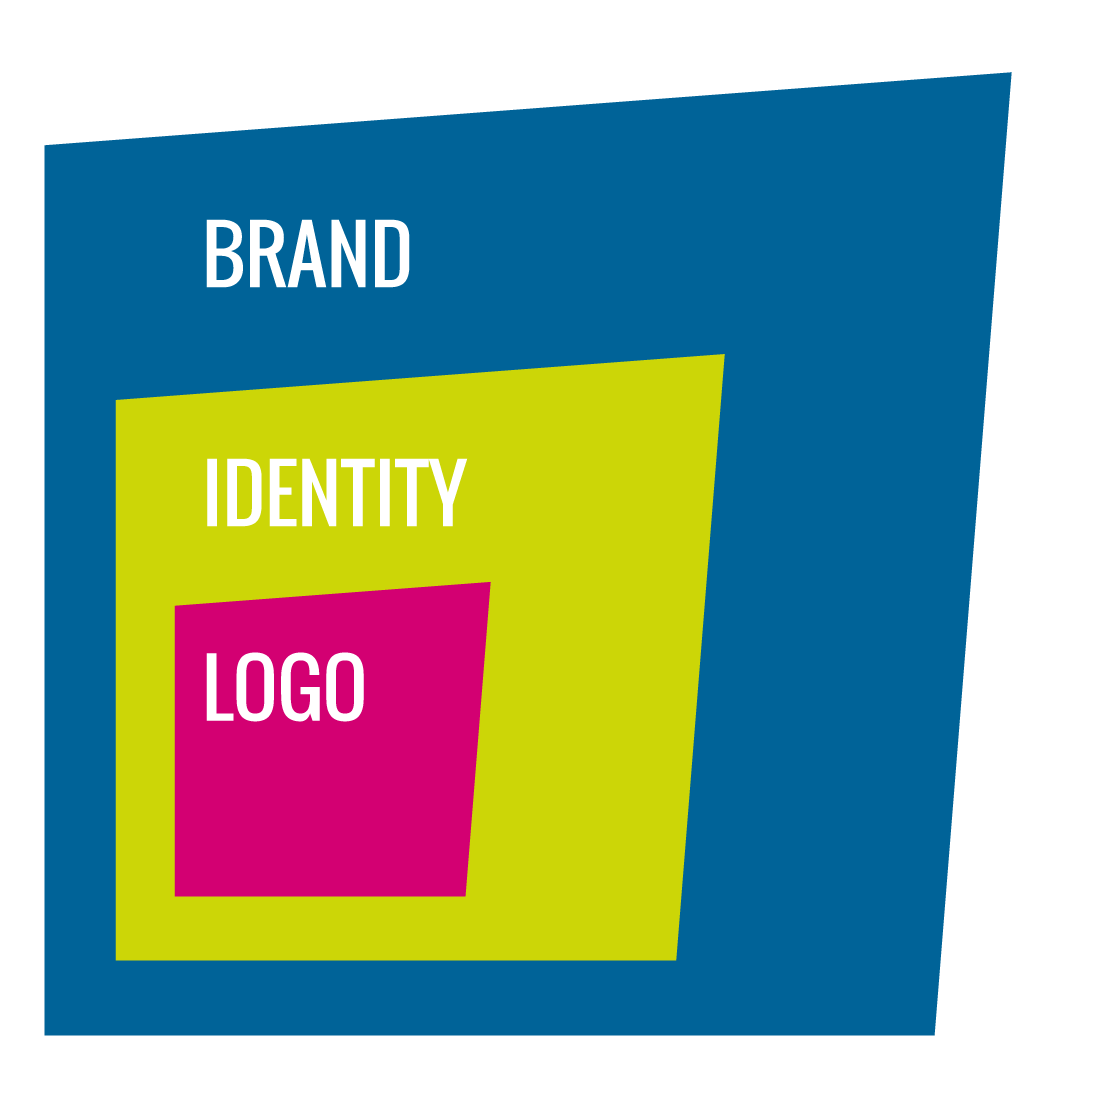 Brand, Identity, Logo - what is the difference?